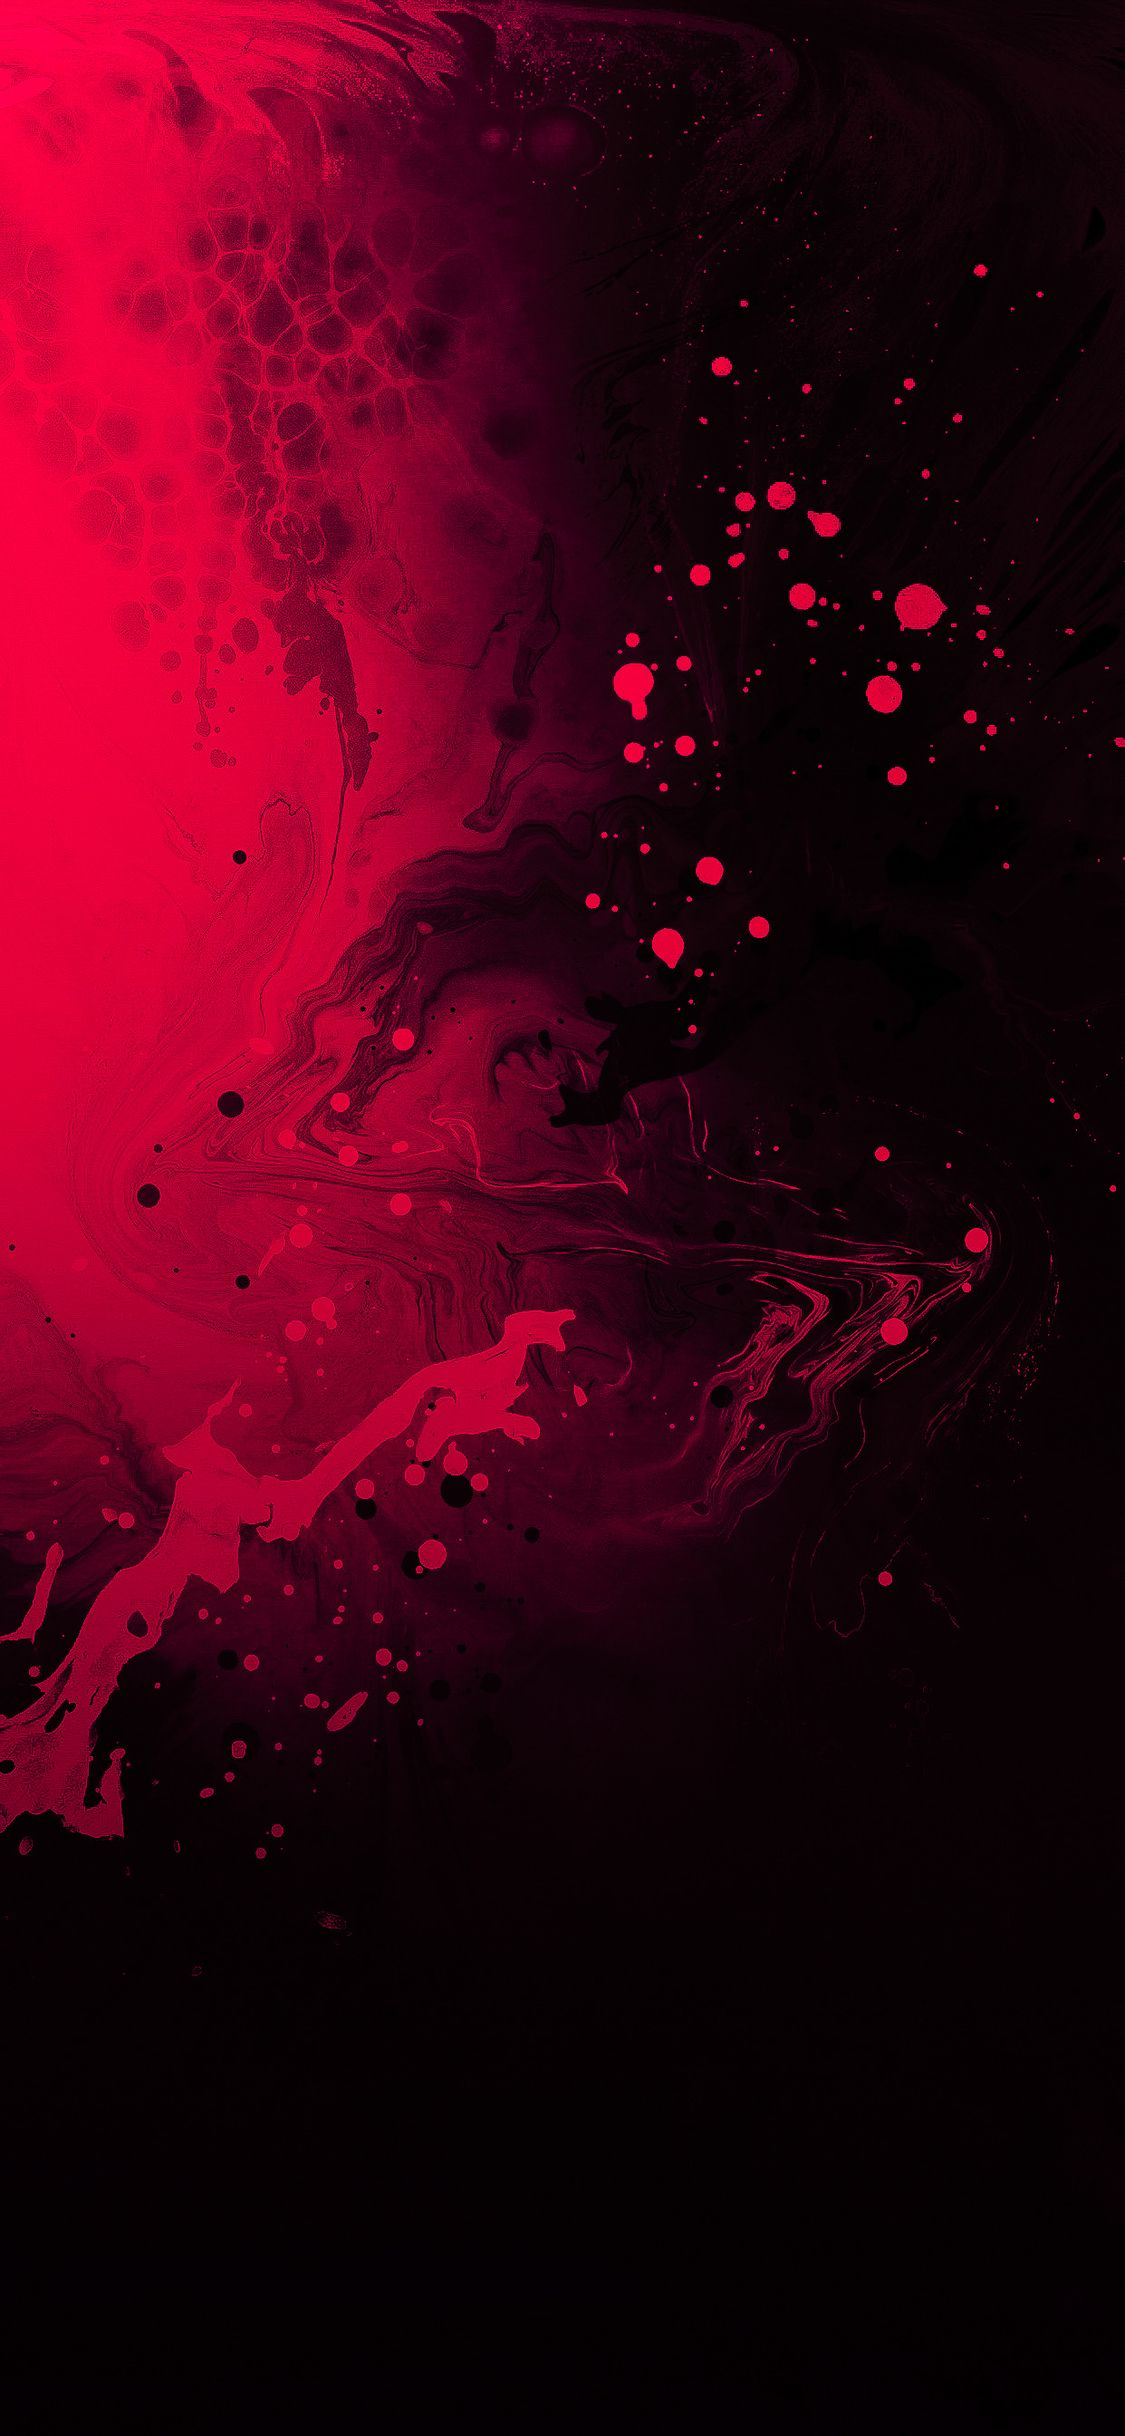 Best Wallpaper For Iphone 11 Pro Max Ytechb Com In 2020 Dark Wallpaper Iphone Abstract Iphone Wallpaper Colourful Wallpaper Iphone